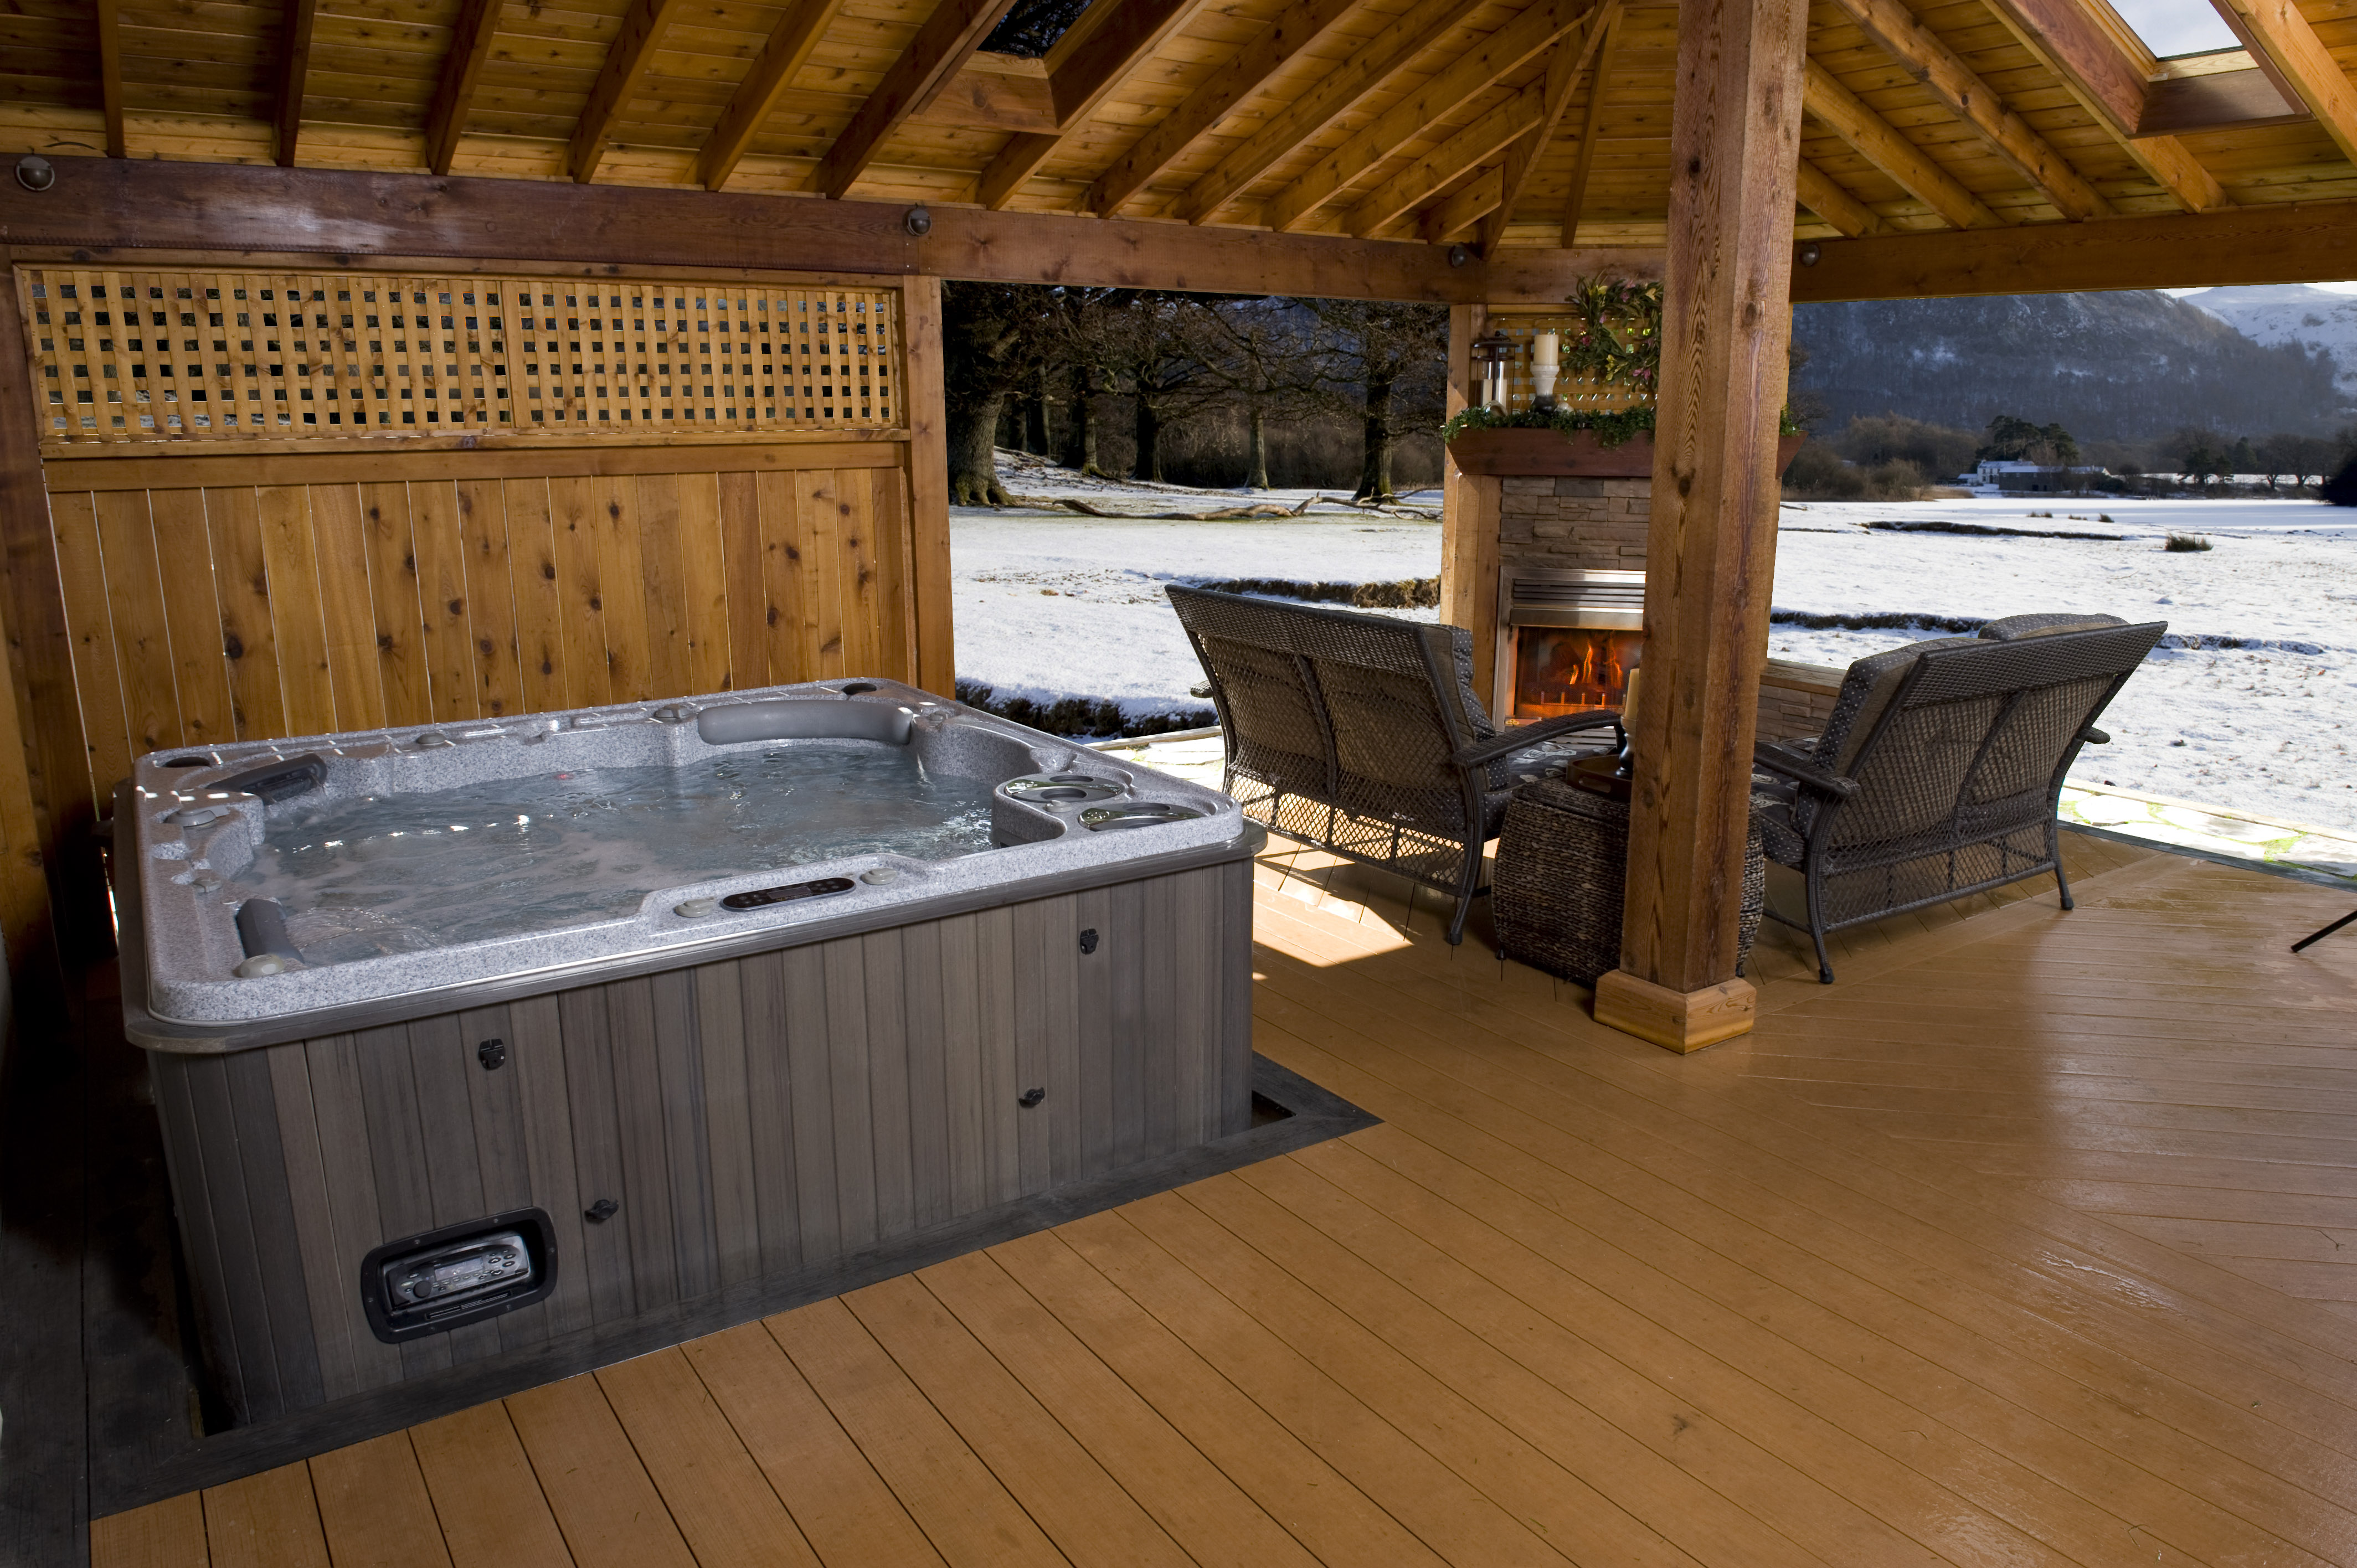 Hydropool Hot Tub In Winter